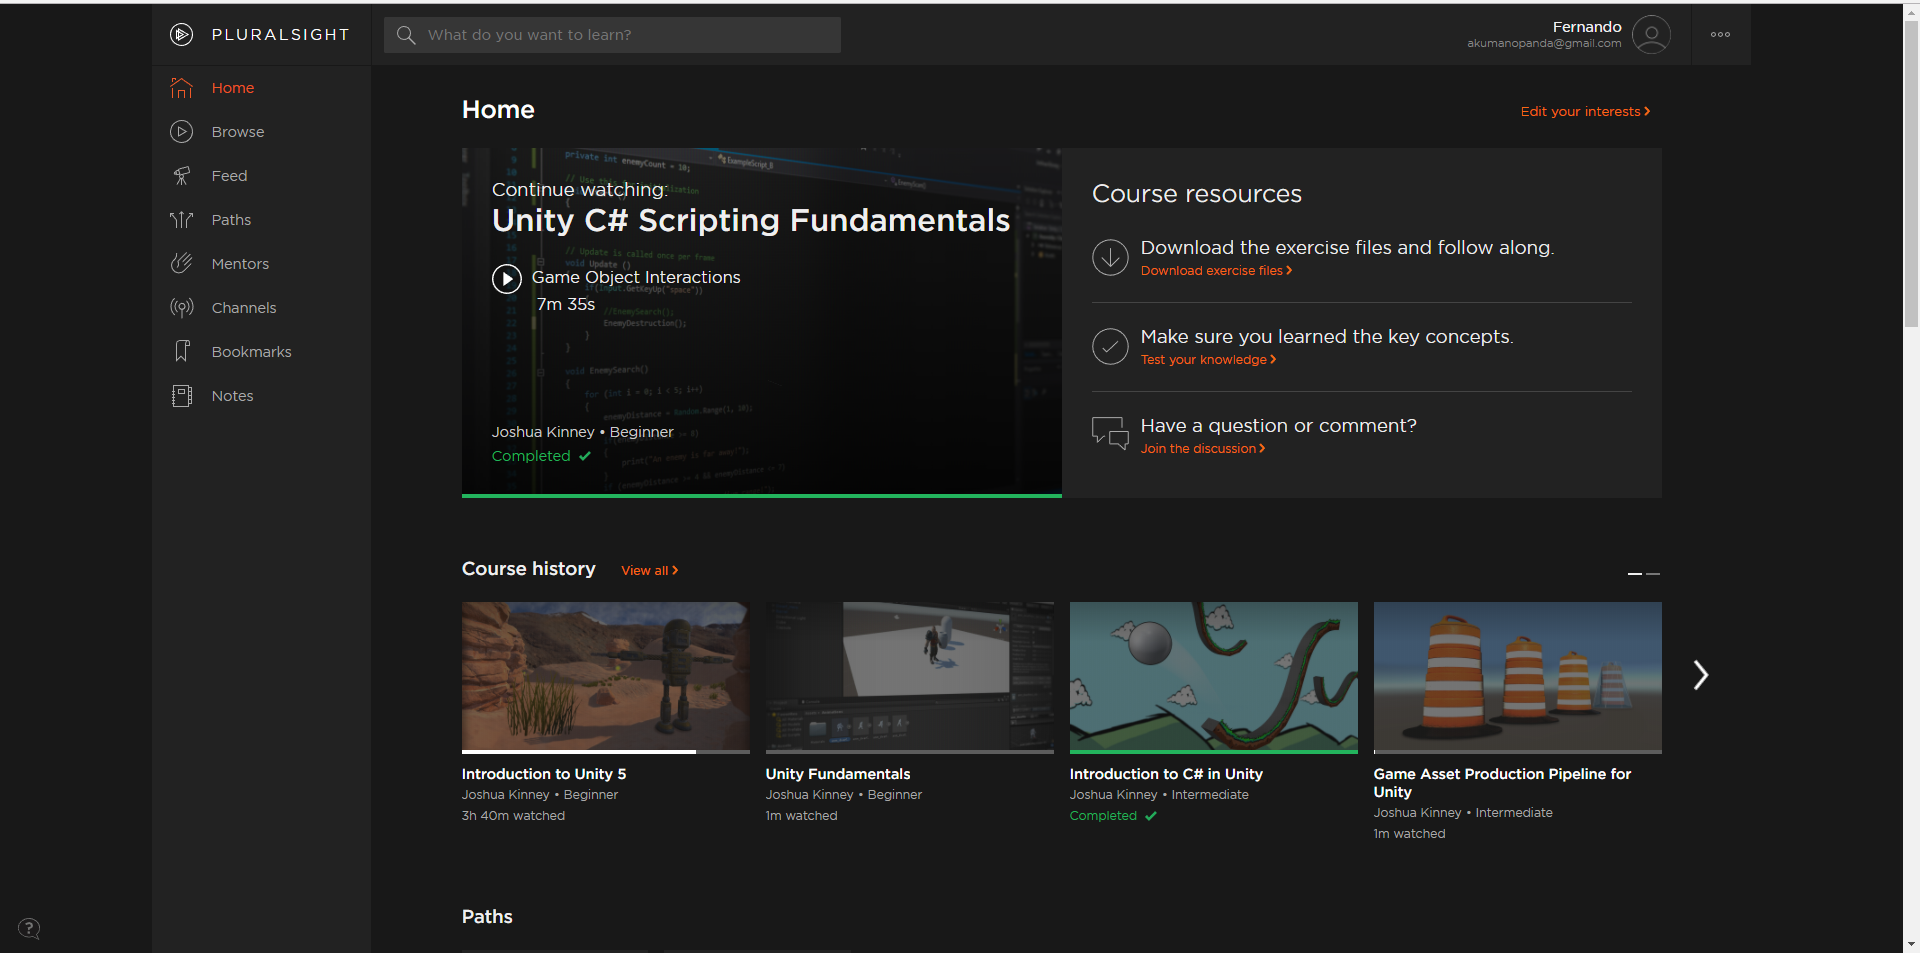 Some of the tutorials I have been following from Pluralsight